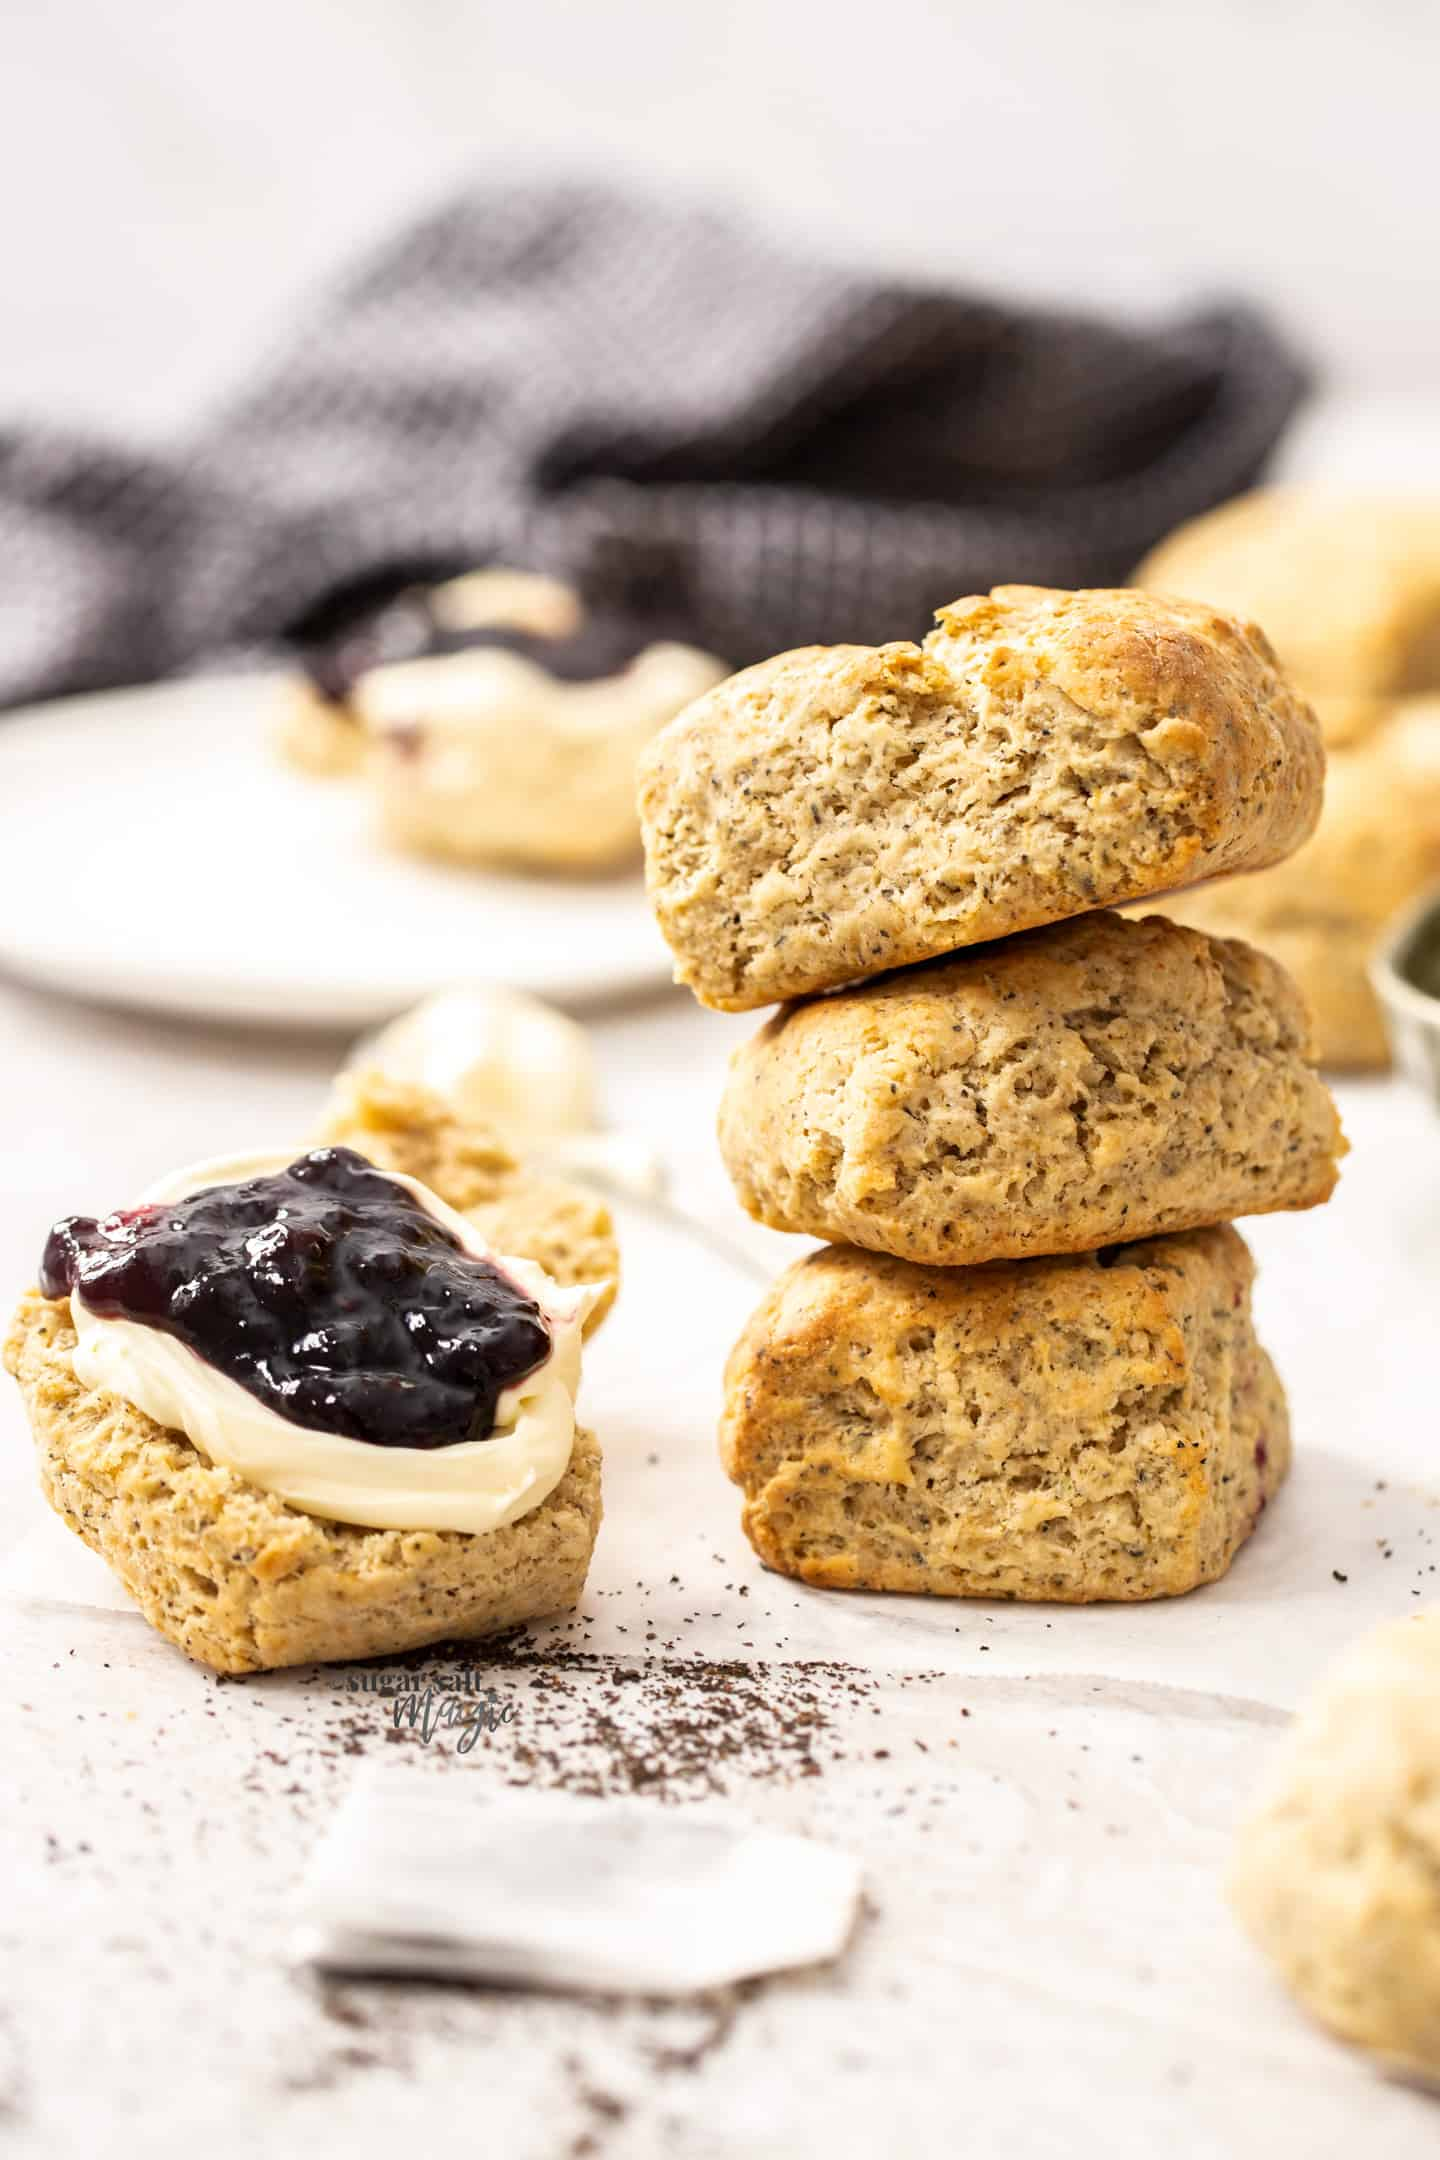 3 stacked scones with half a scone next to them, topped with cream and jam.